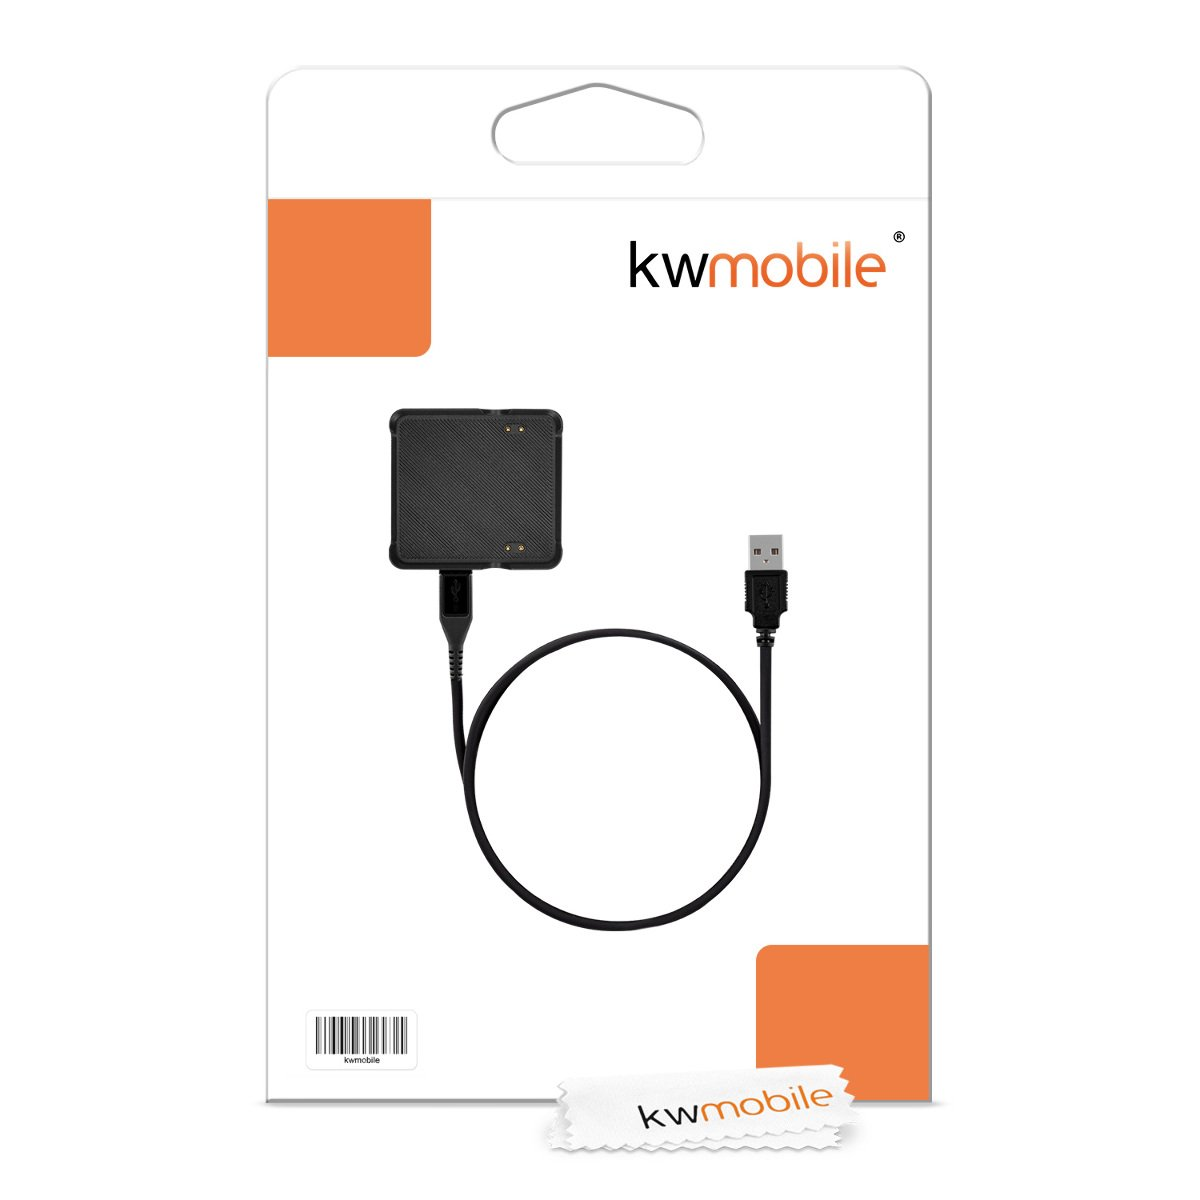 kwmobile Garmin Vivoactive USB Ladekabel - Kabel: Amazon.de: Elektronik